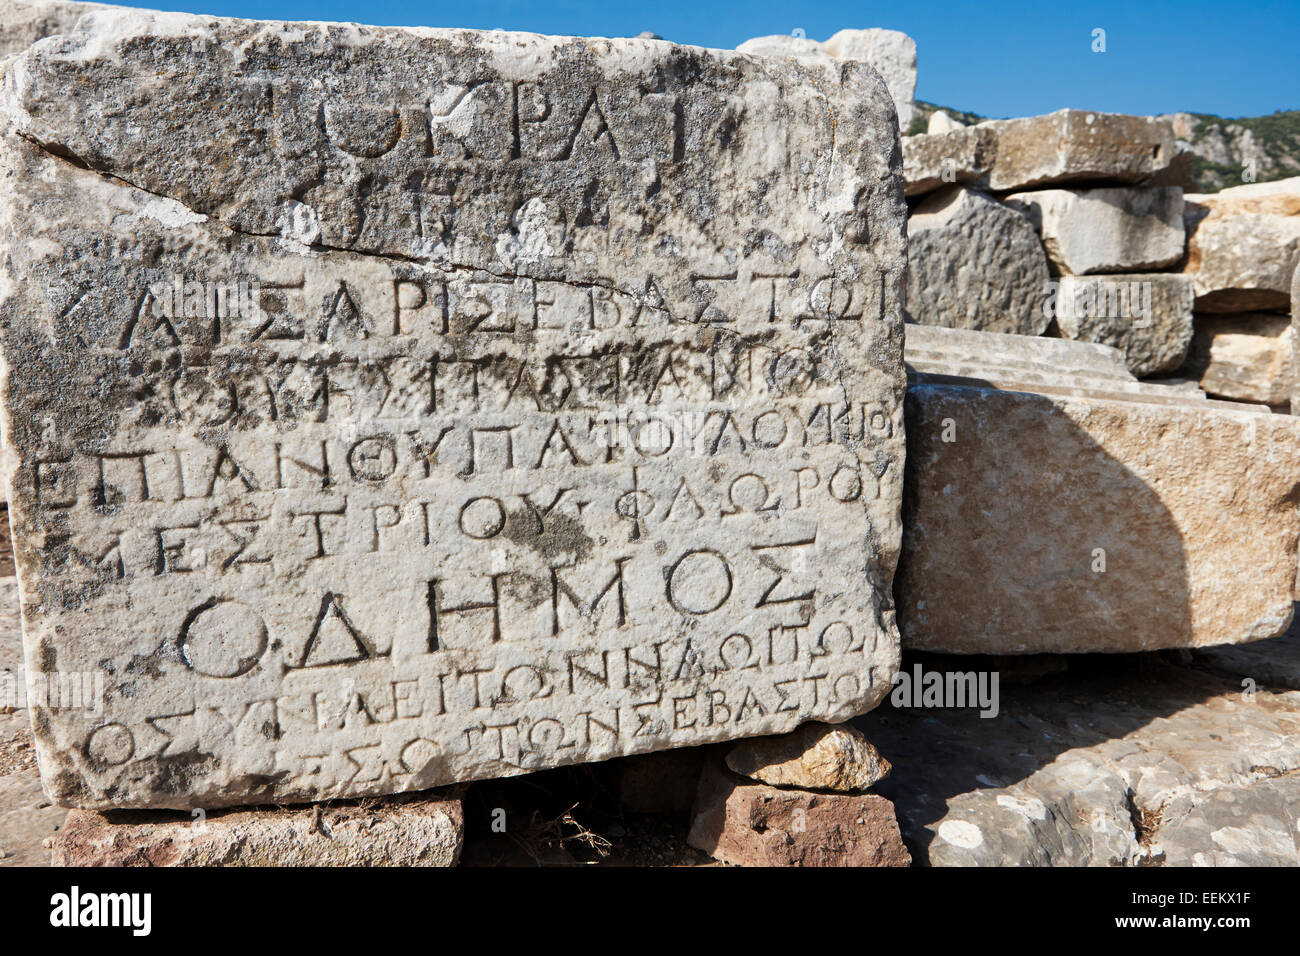 Ancient stone with inscriptions in Greek language. Ephesus Archaeological Site, Izmir province, Turkey. - Stock Image